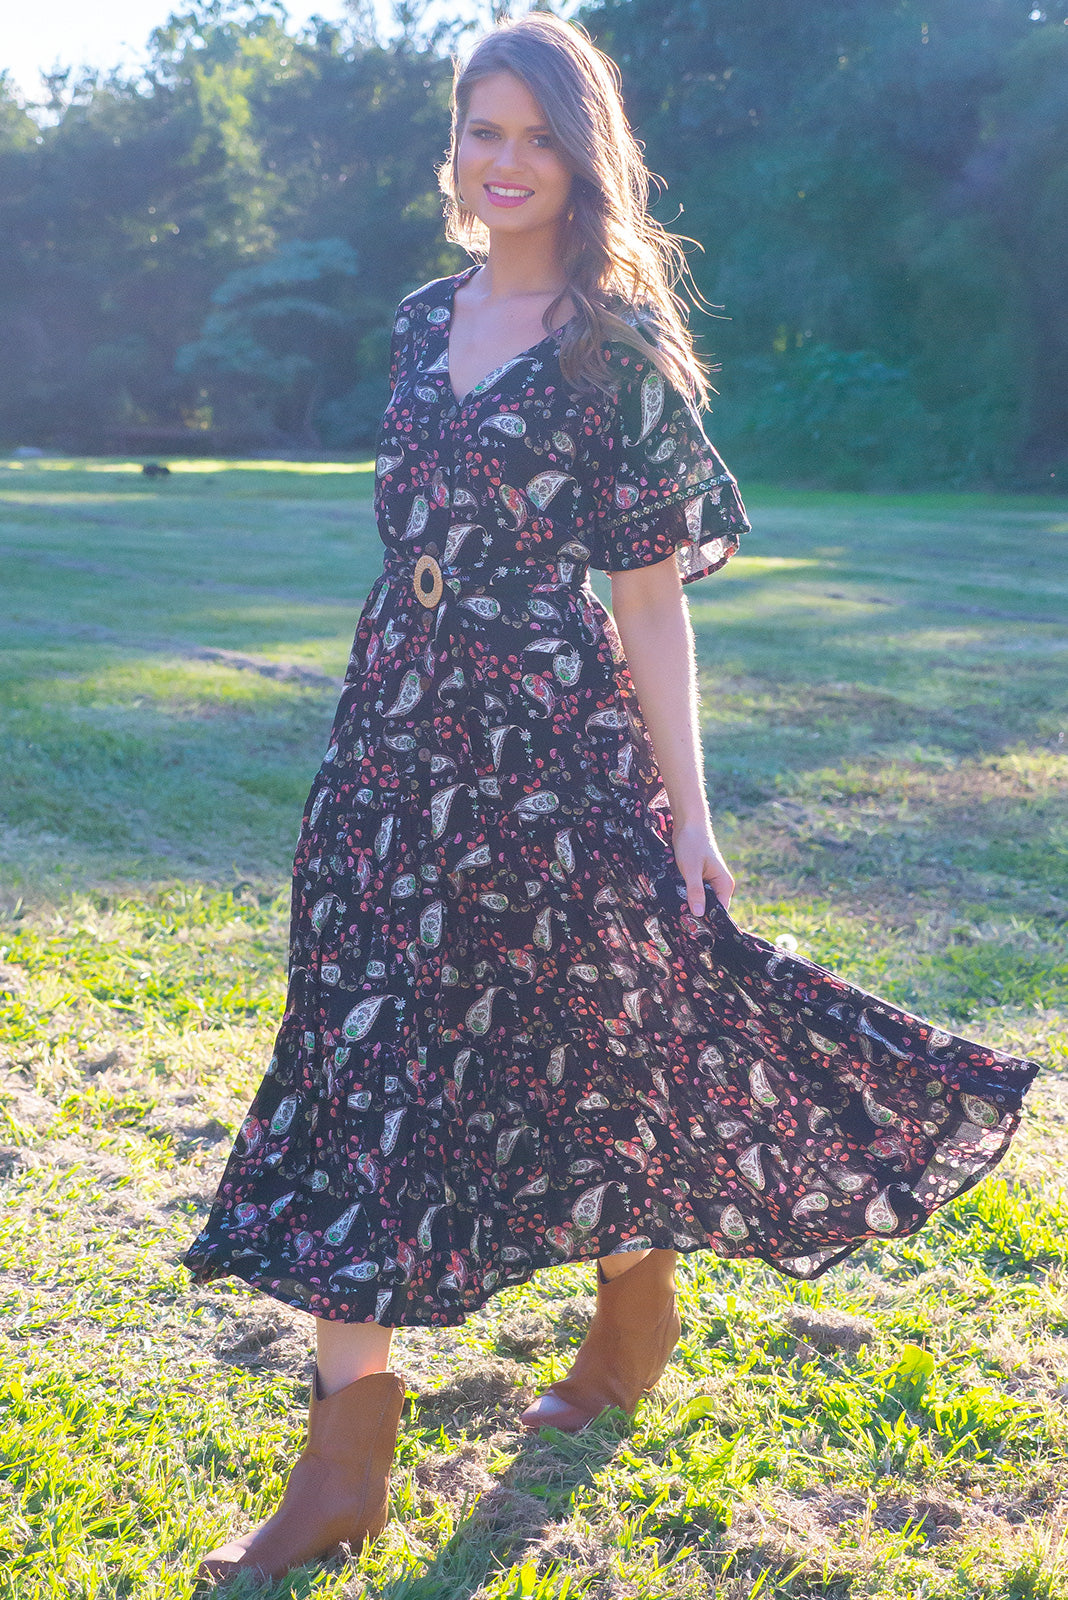 Lucinda Paisley Noir Maxi Dress features a frilled drop waist, button front, soft frill sleeves and a feature rattan buck belt the fabric is a soft crinkle textured woven 100% rayon in a delicate paisley print on a black base